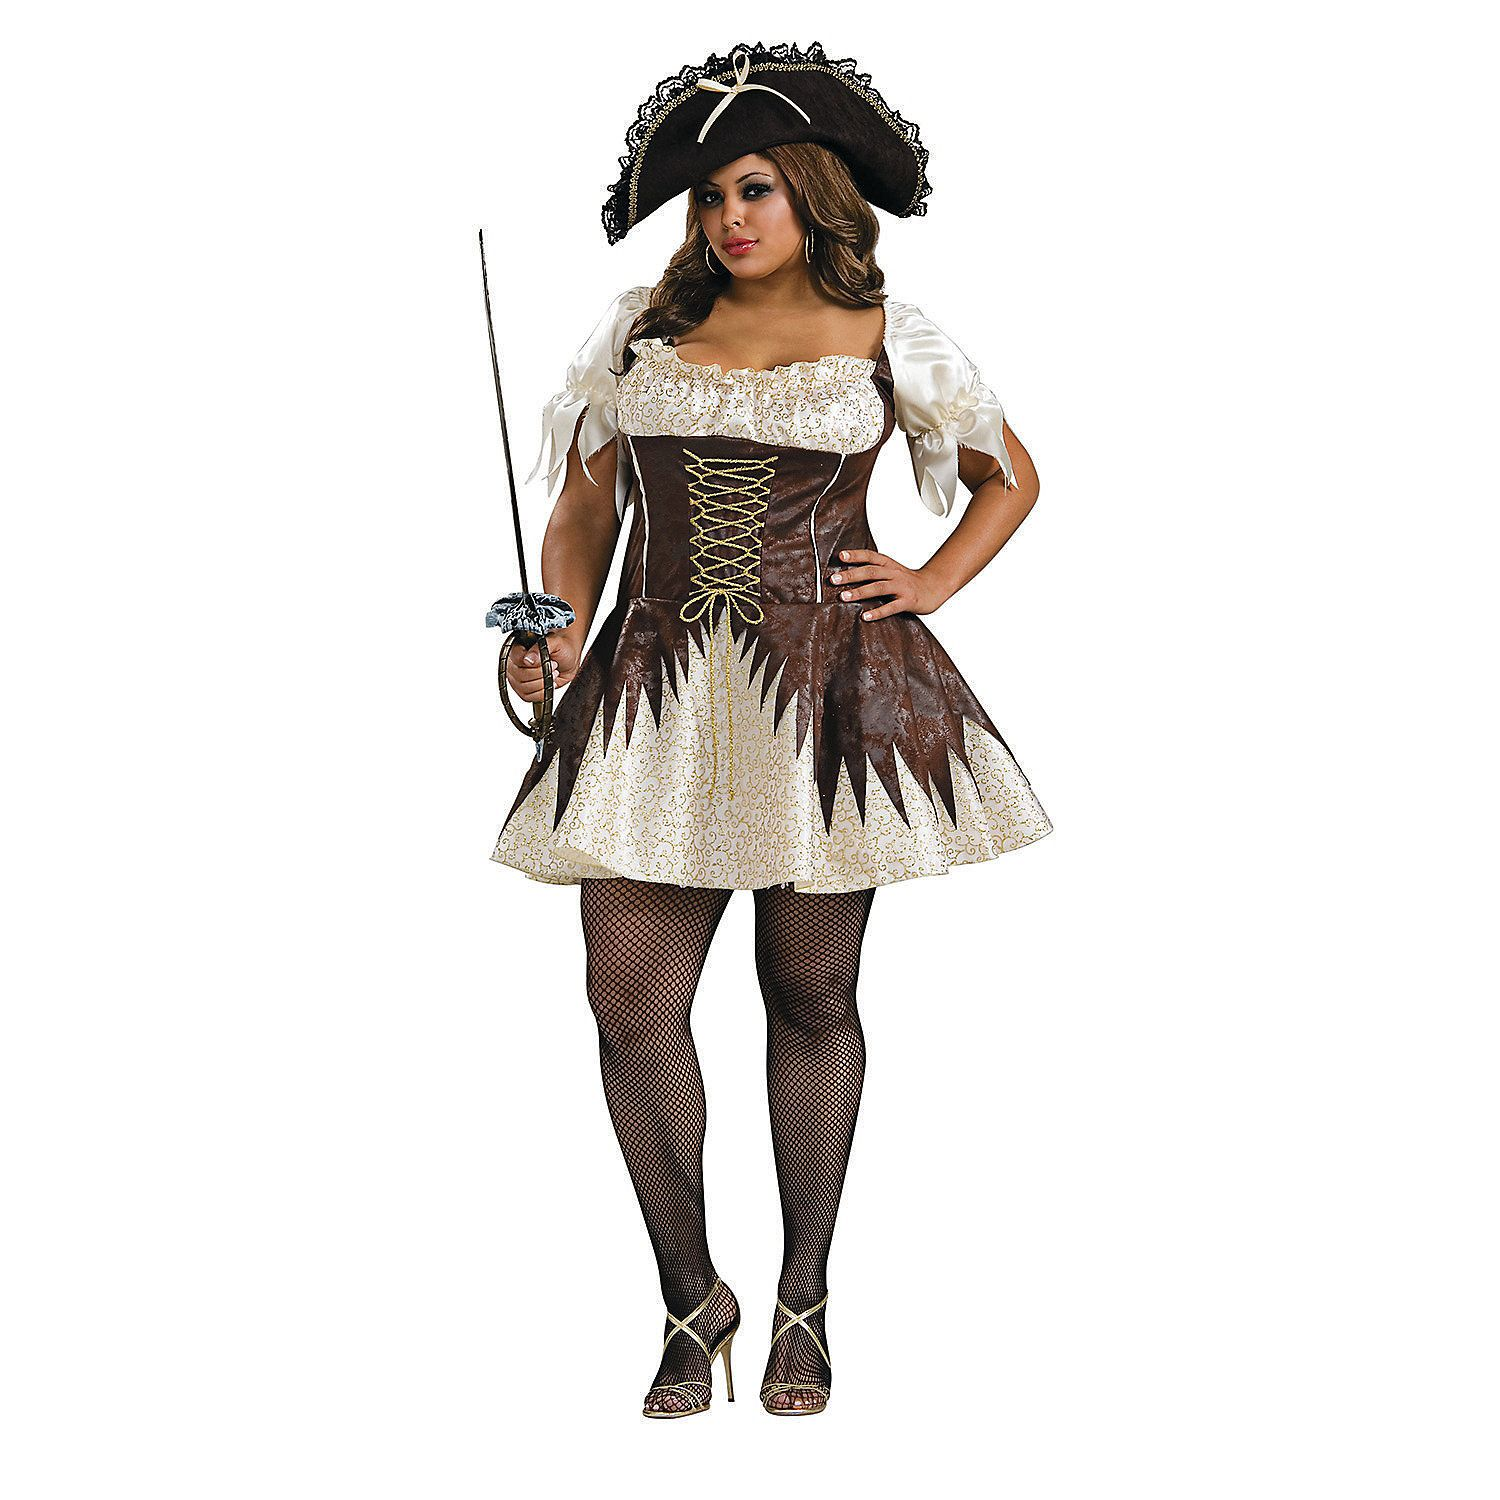 Buccaneer Pirate Womens Plus Adult Womens Costume fits adults plus. hand wash or spot clean with a d& cloth. see all our adult womens Halloween costumes ...  sc 1 st  Pinterest & Buccaneer Pirate Woman Adult Womenu0027s Costume#OrientalTrading ...